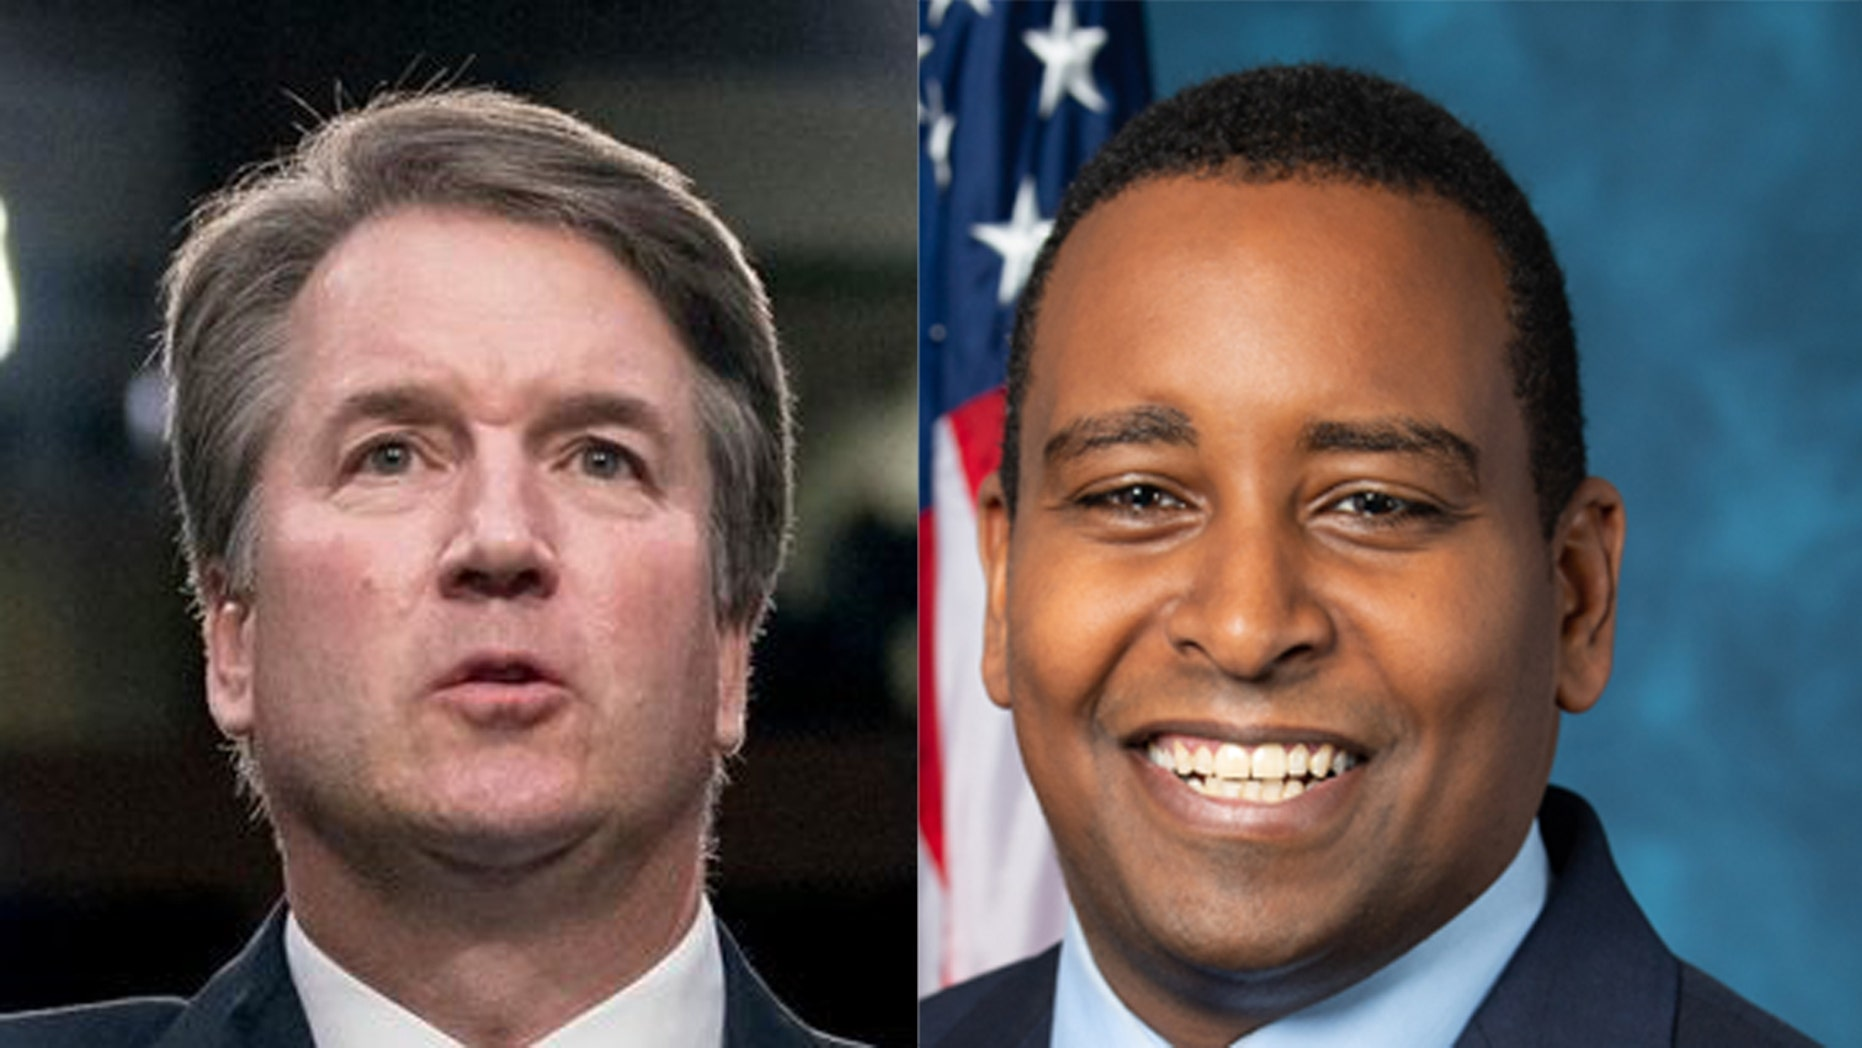 Rep. Joe Neguse, D-Colo., (right) claims Supreme Court Justice Brett Kavanaugh (left) committed perjury during the tense confirmation hearing last year, but does not say which specific statement is problematic.